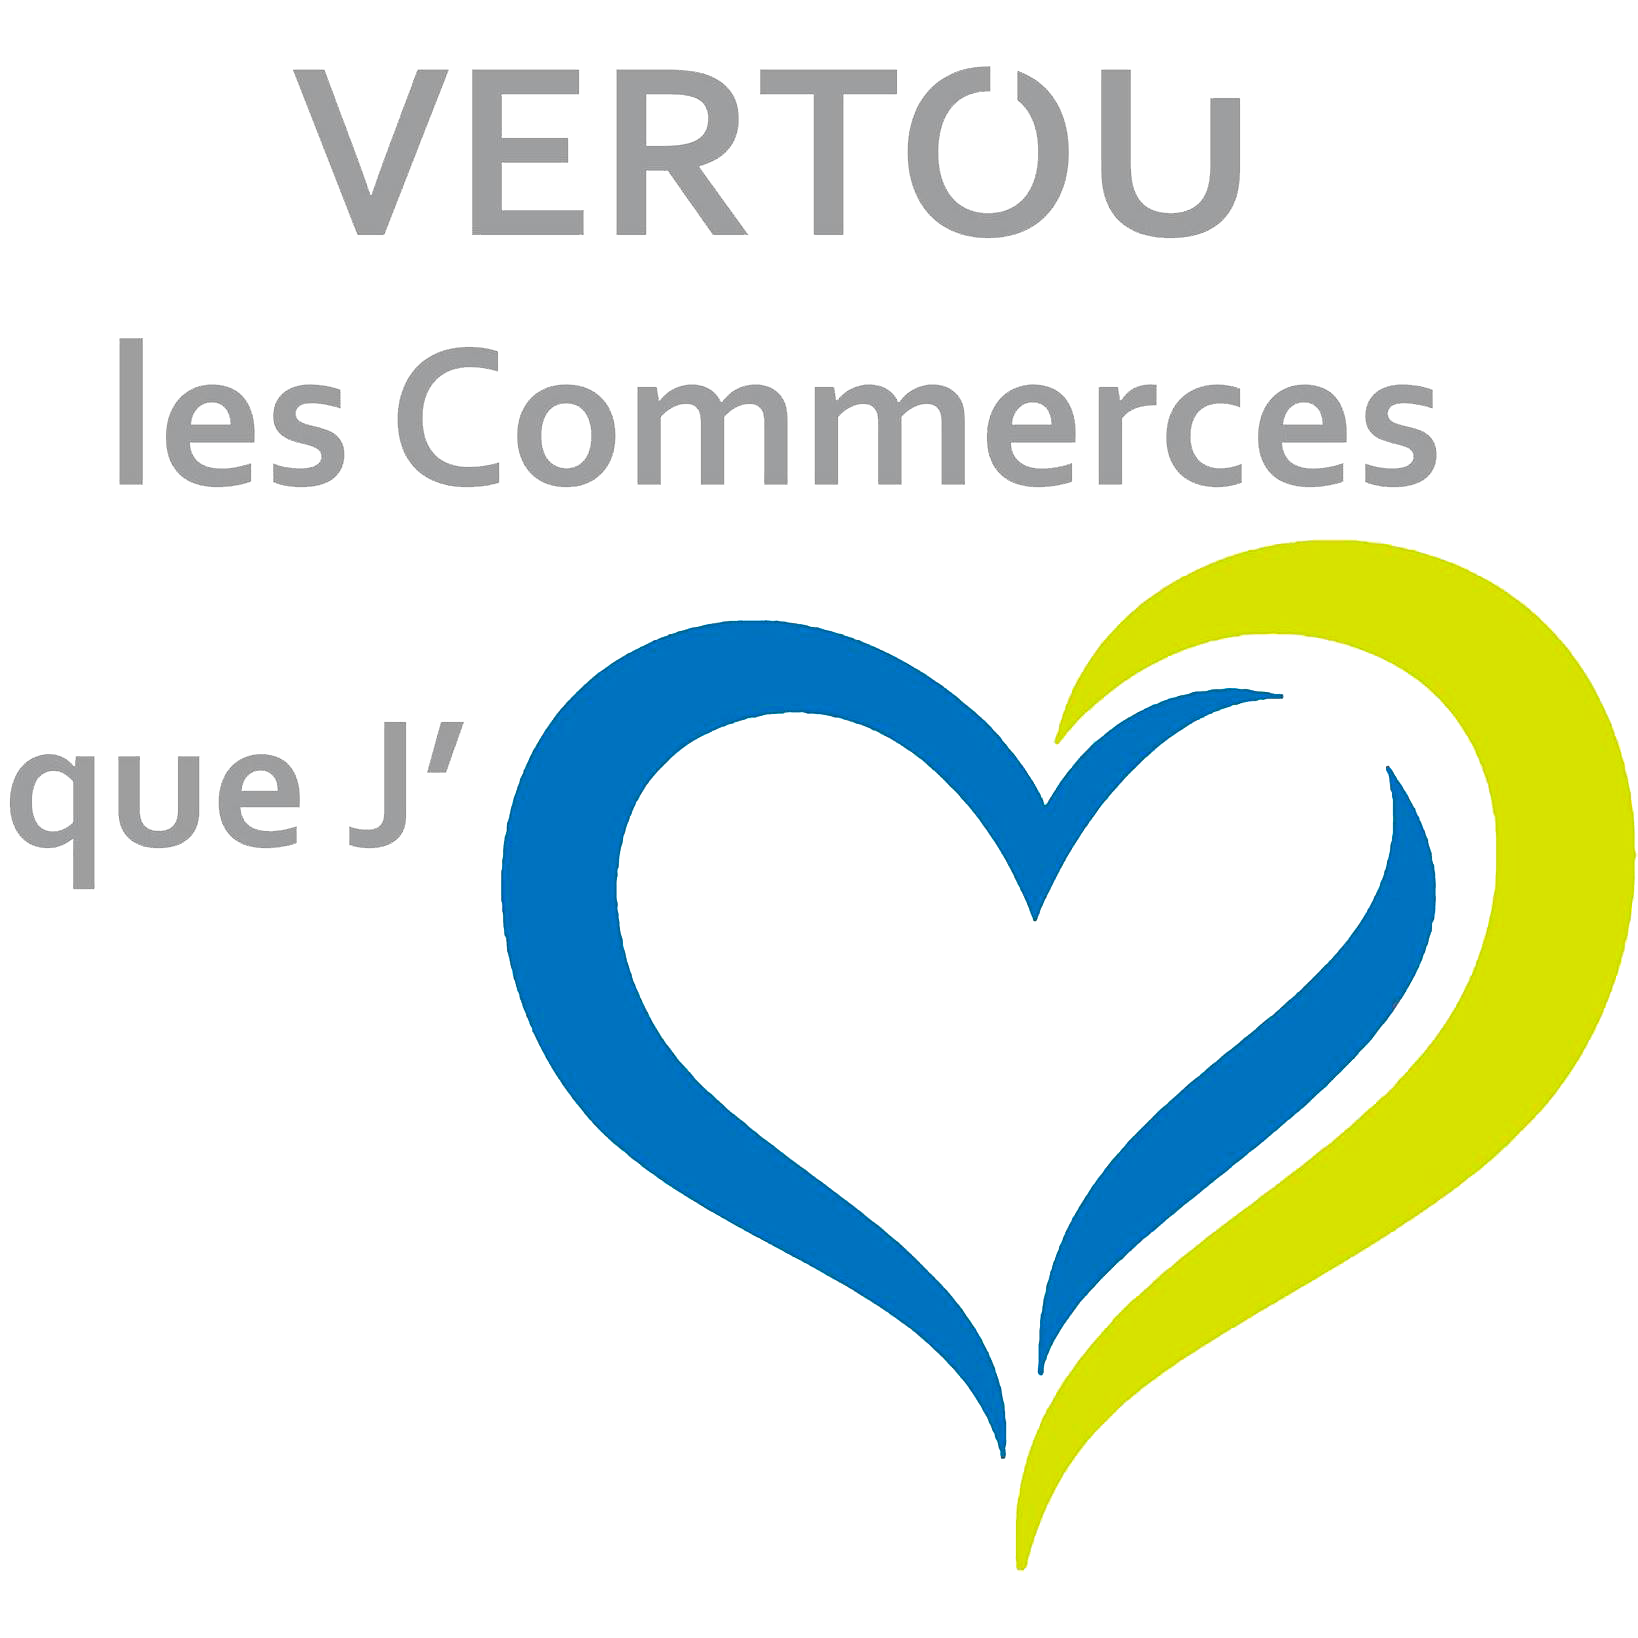 Site association des commerçants de Vertou